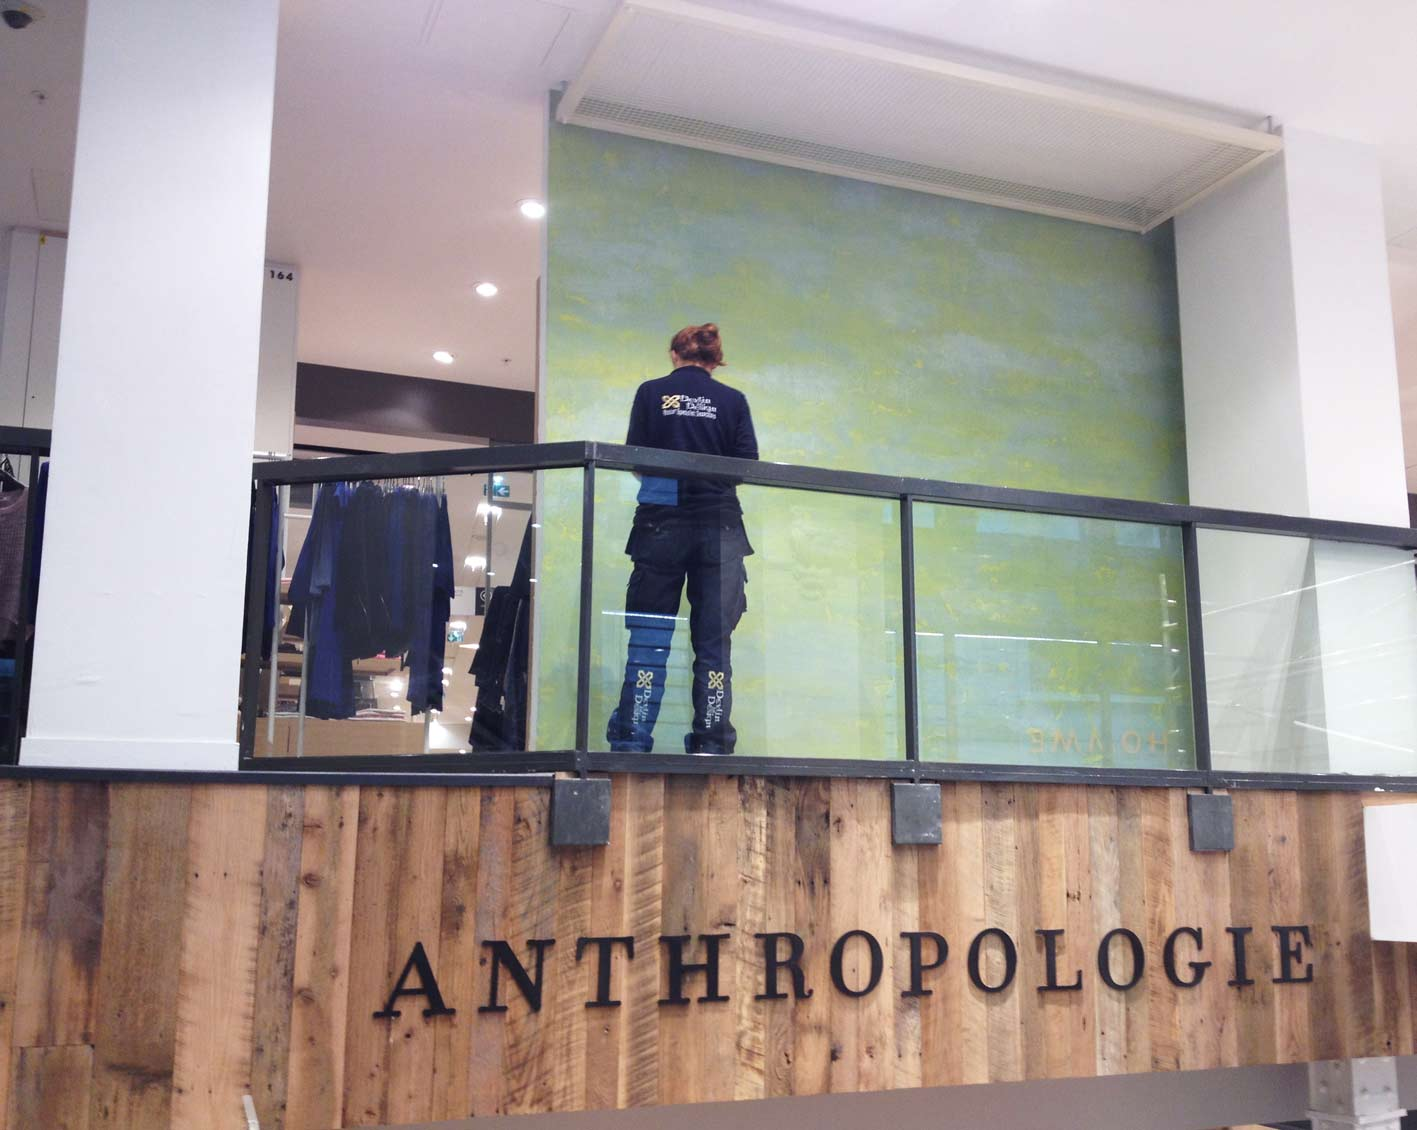 Devlin In Design decorative painting team created this distressed, hand painted plaster effect wall installation for the new Anthropologie store in Paris.